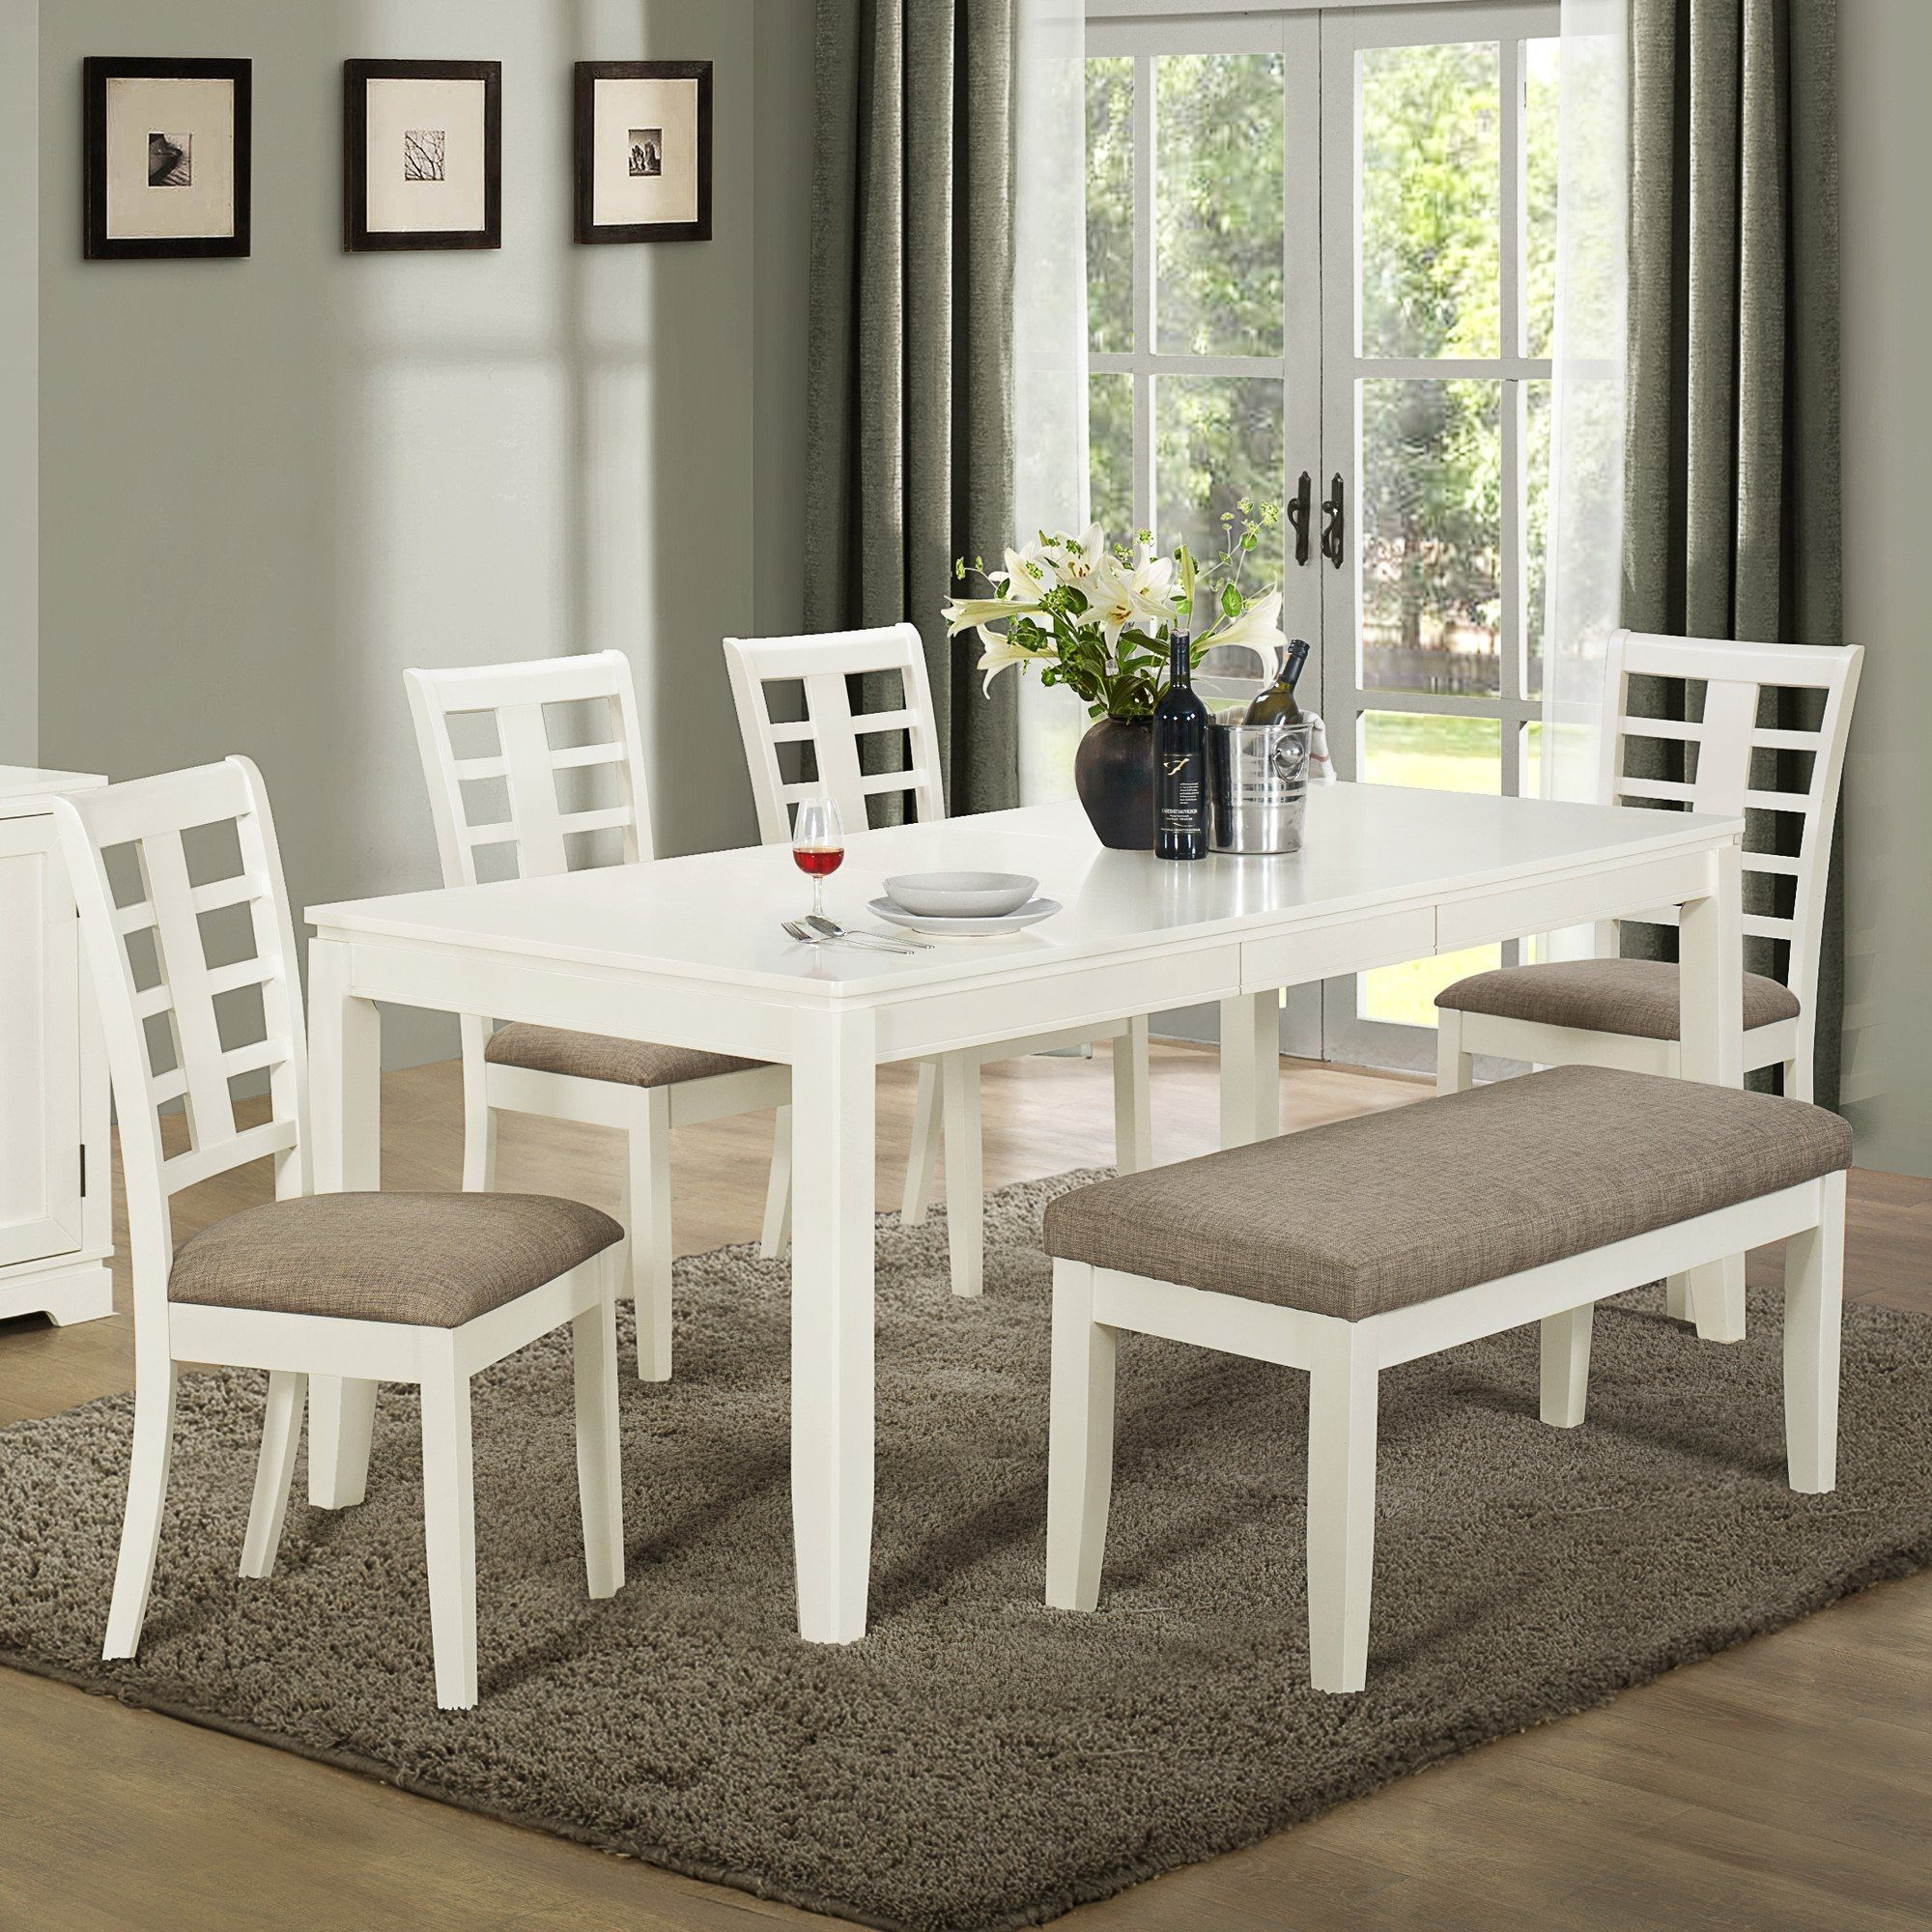 Dining room table with upholstered bench dining room furniture